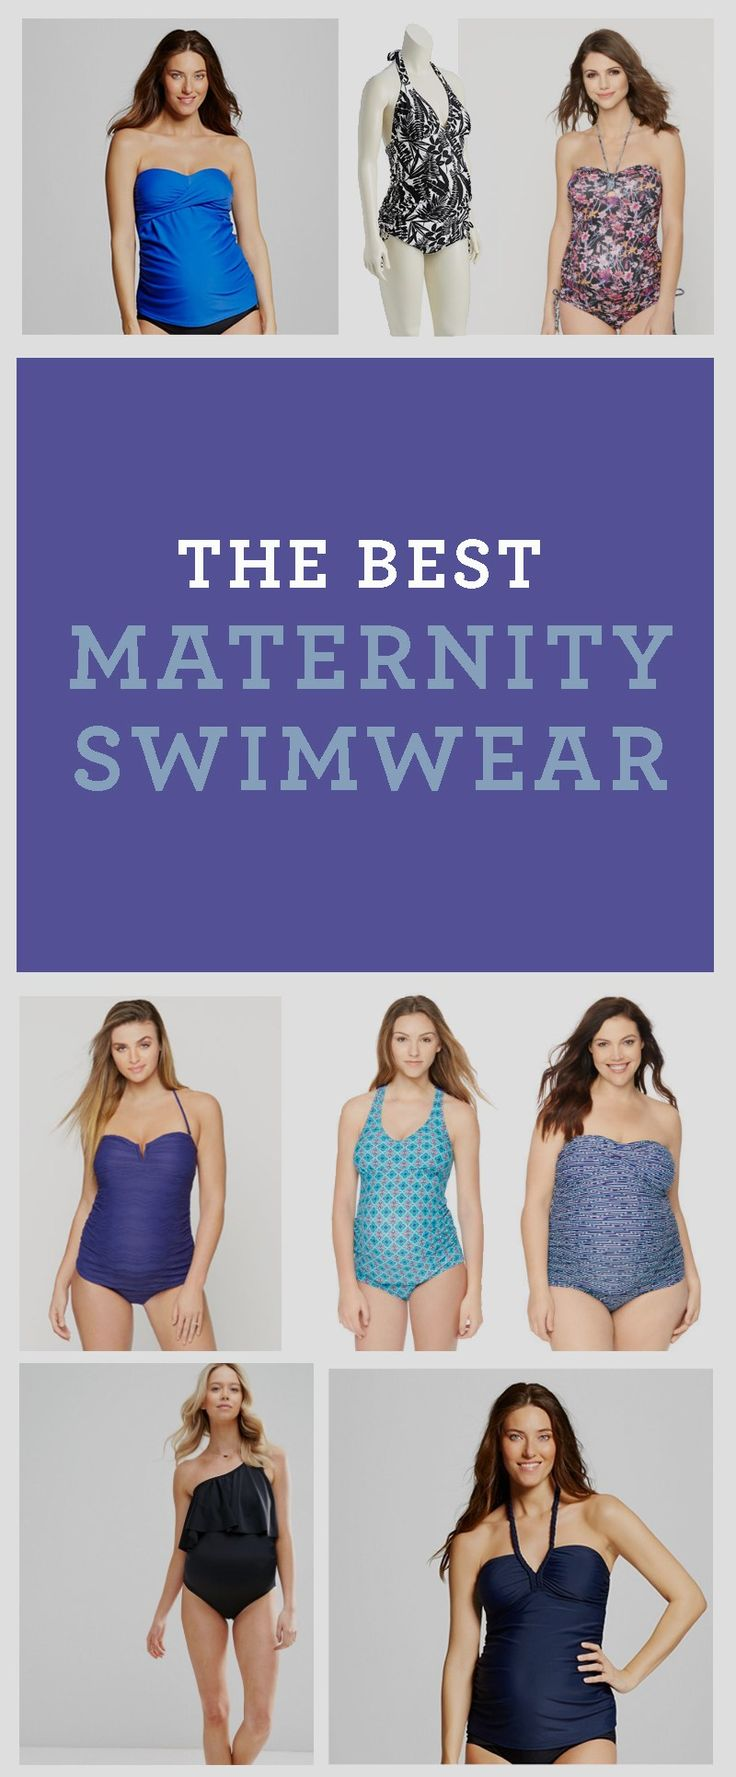 Click through for all the best maternity swimsuits! Don't make the same mistake I made and assume that because a bathing suit stretches it will fit your pregnant body. You might have to be cut out of it with the jaws of life. Gets something fun that feels great, too!